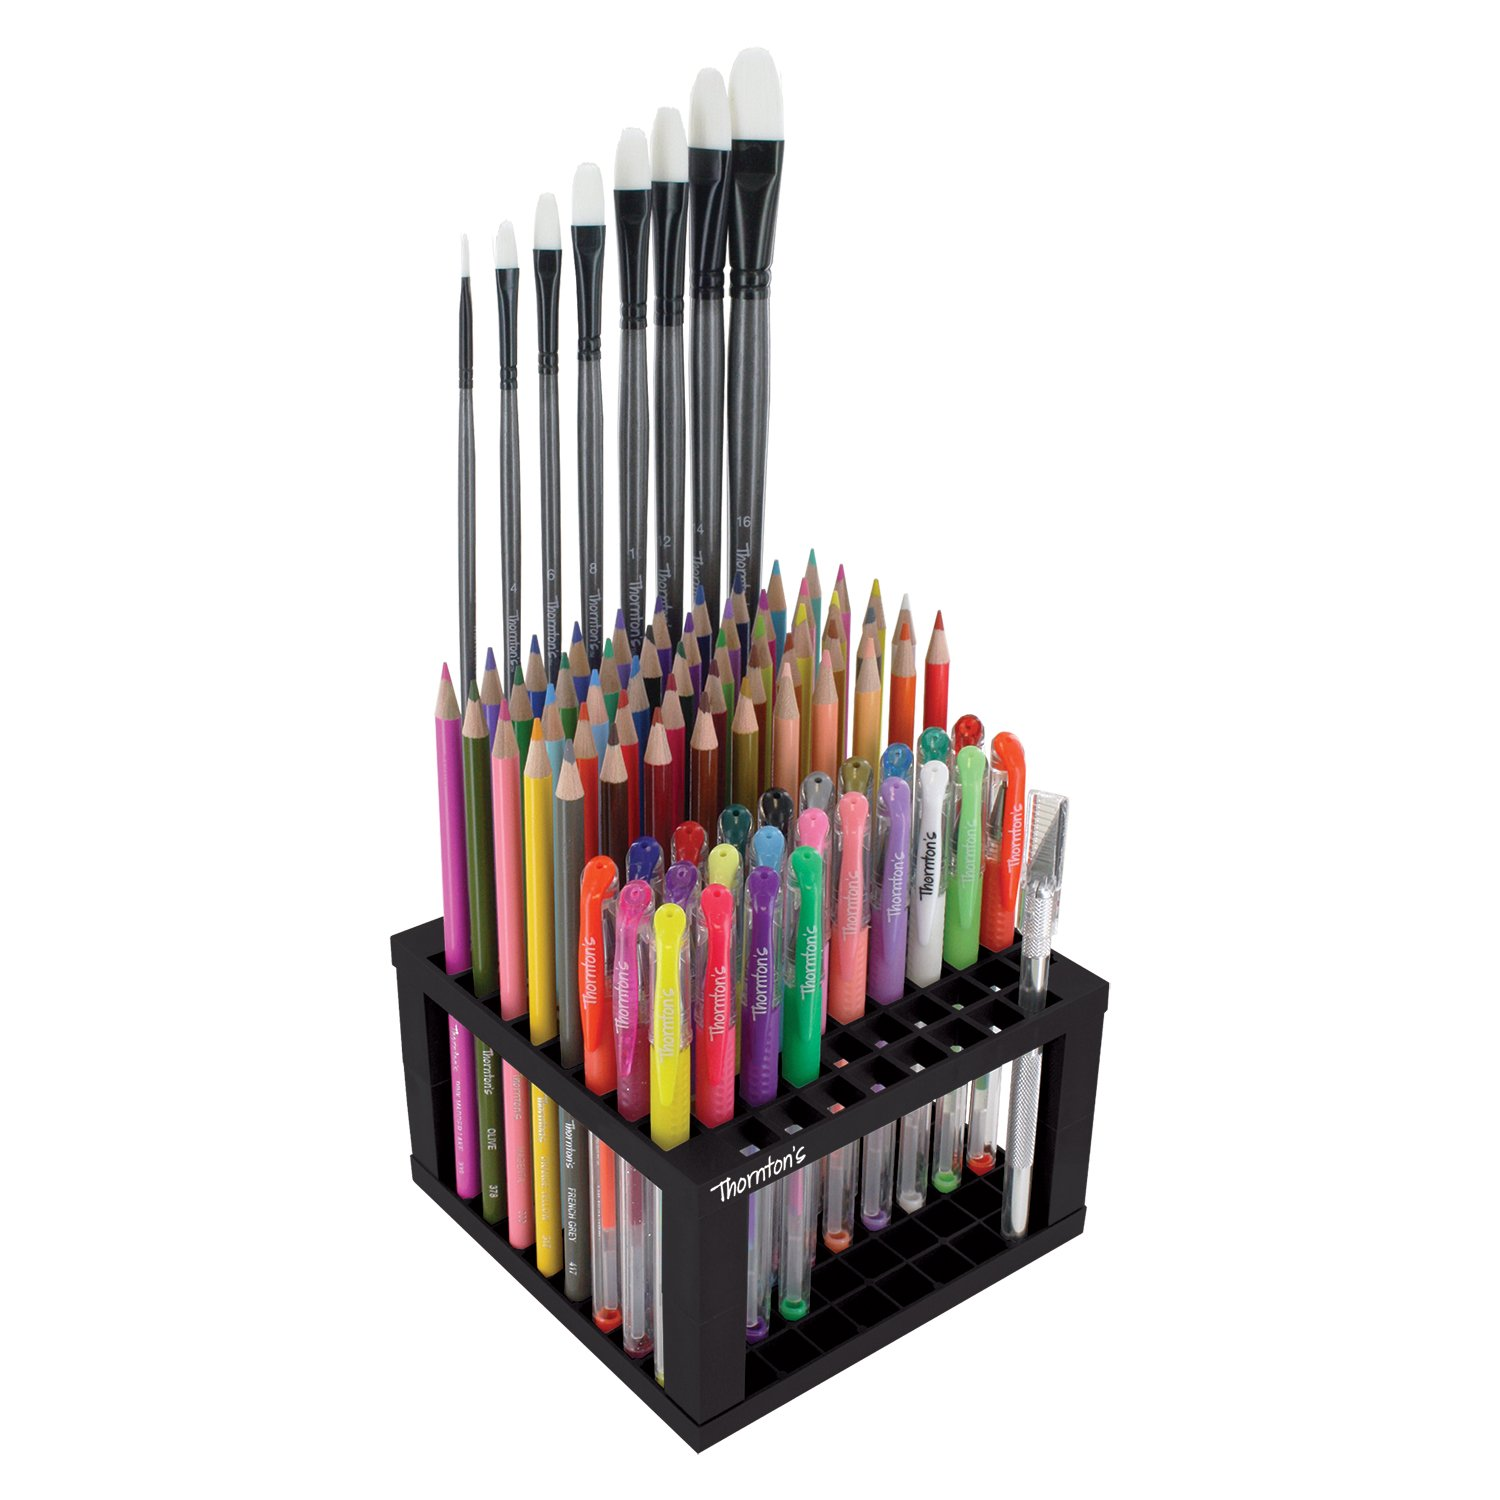 Thornton's Art Supply Plastic 96 Capacity Marker Art Brush Storage Stand Holder Thornton' s Art Supply TAS-84165